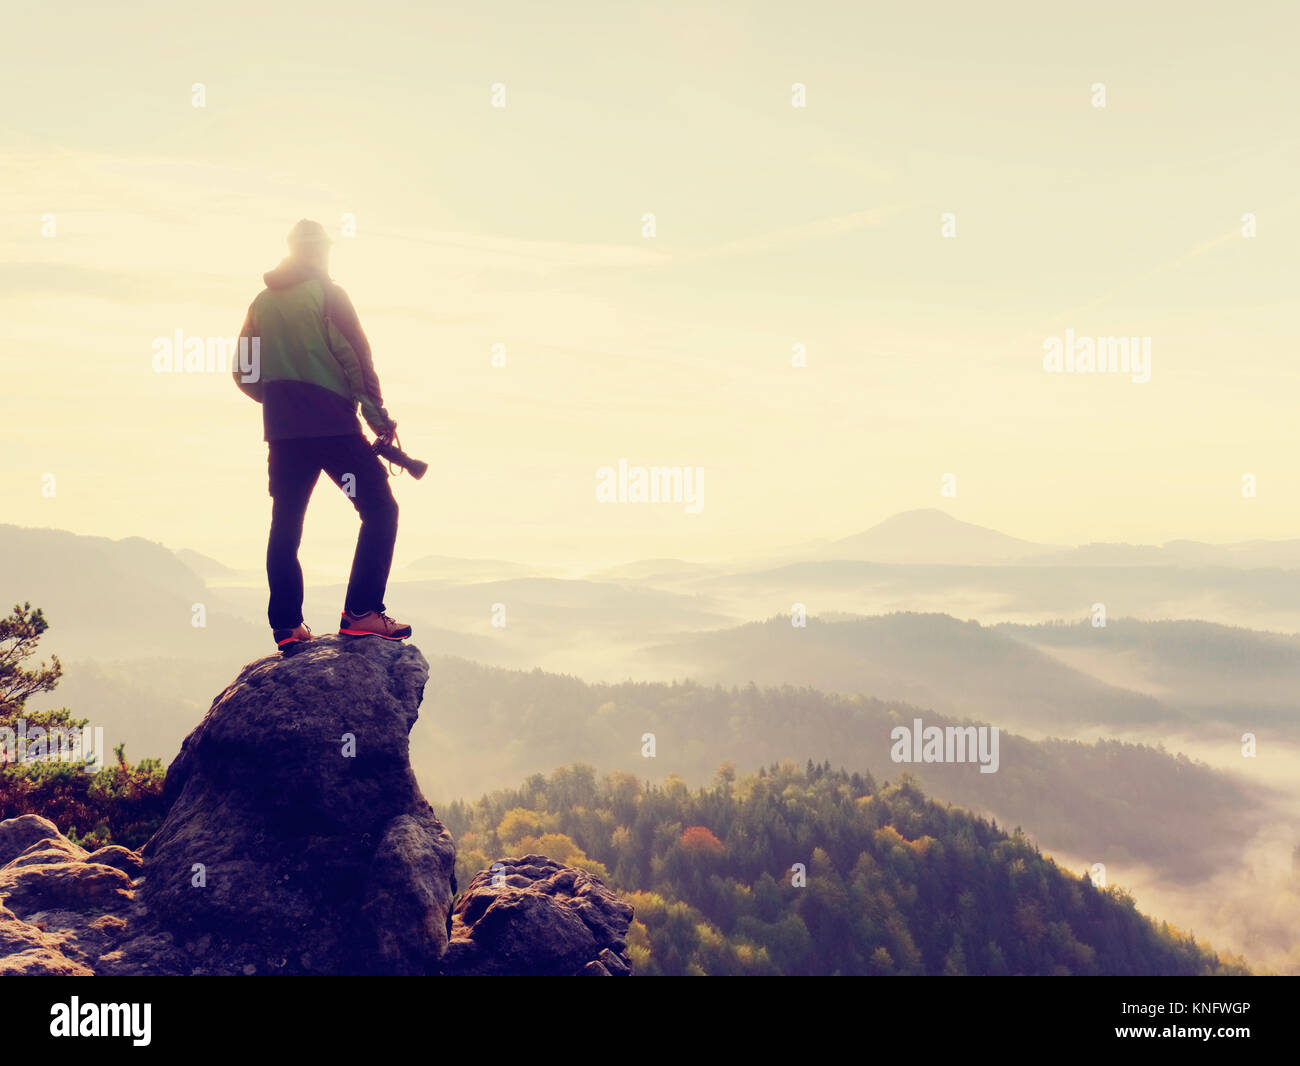 Nature photographer in the action.  Man silhouette above a misty clouds,  morning hilly landscape. - Stock Image